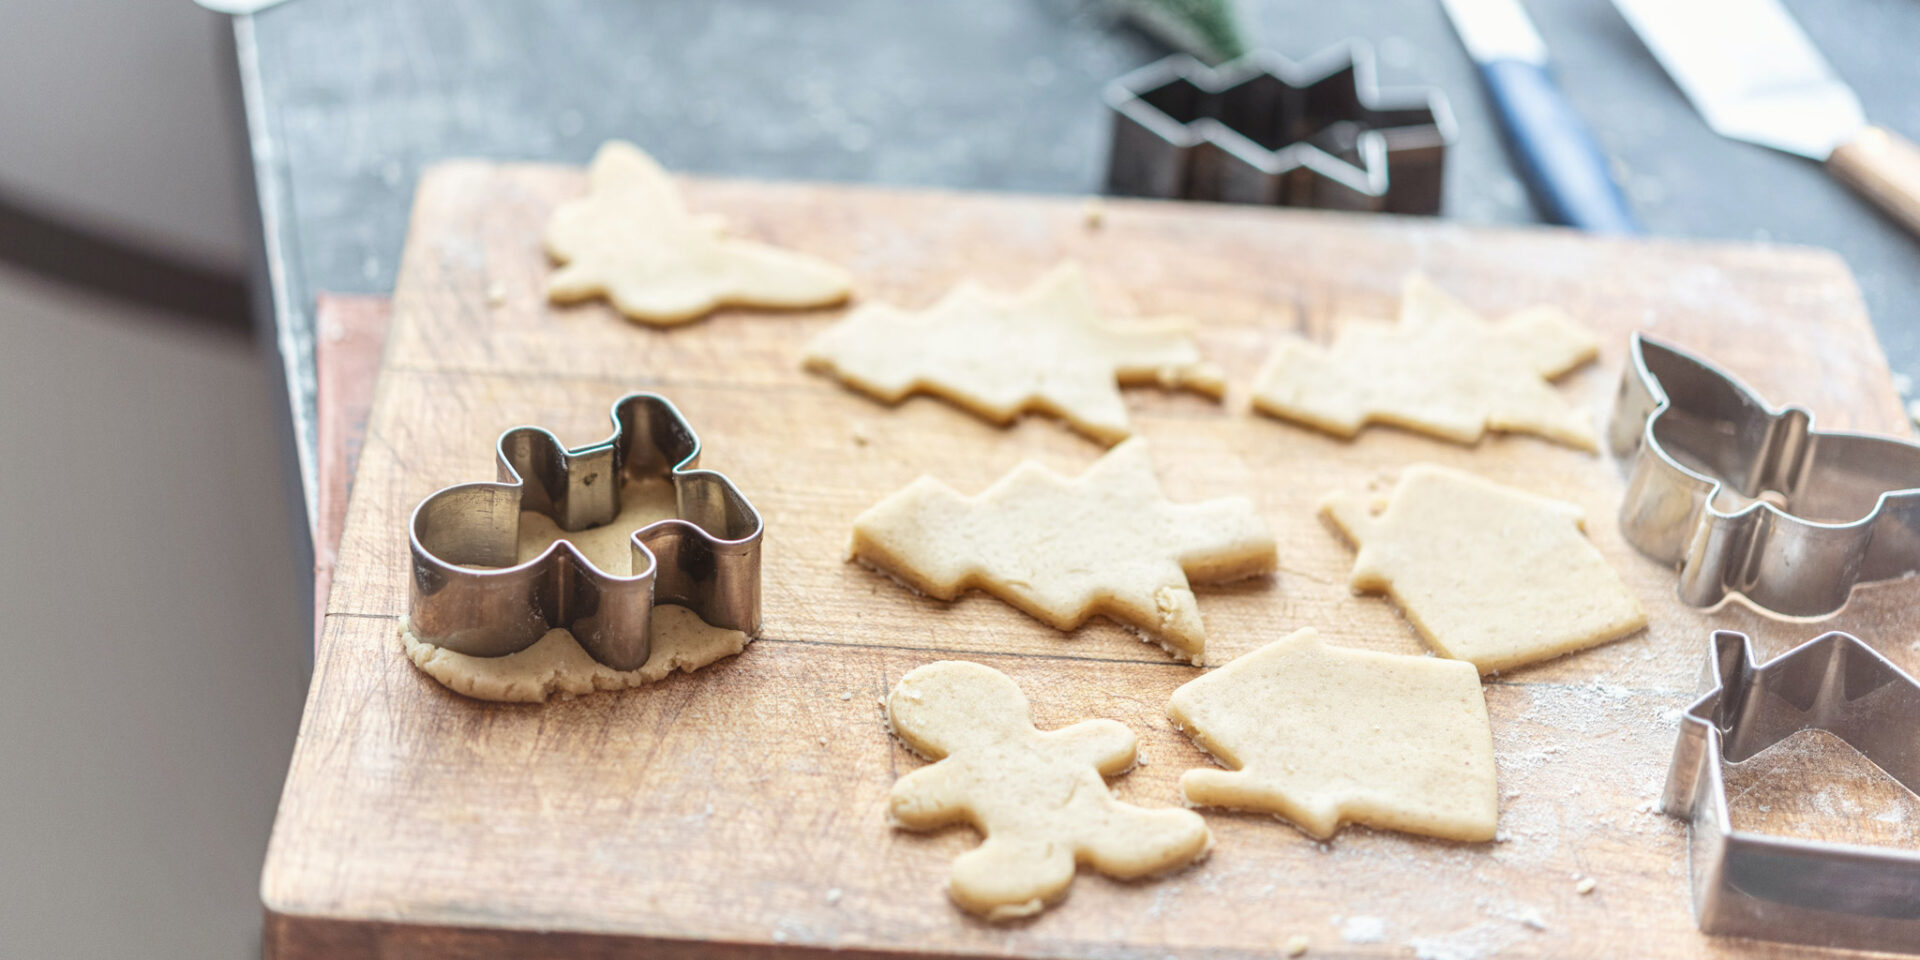 Dinosaur cookie cutters: 7 ways to use them that isn't baking cookies